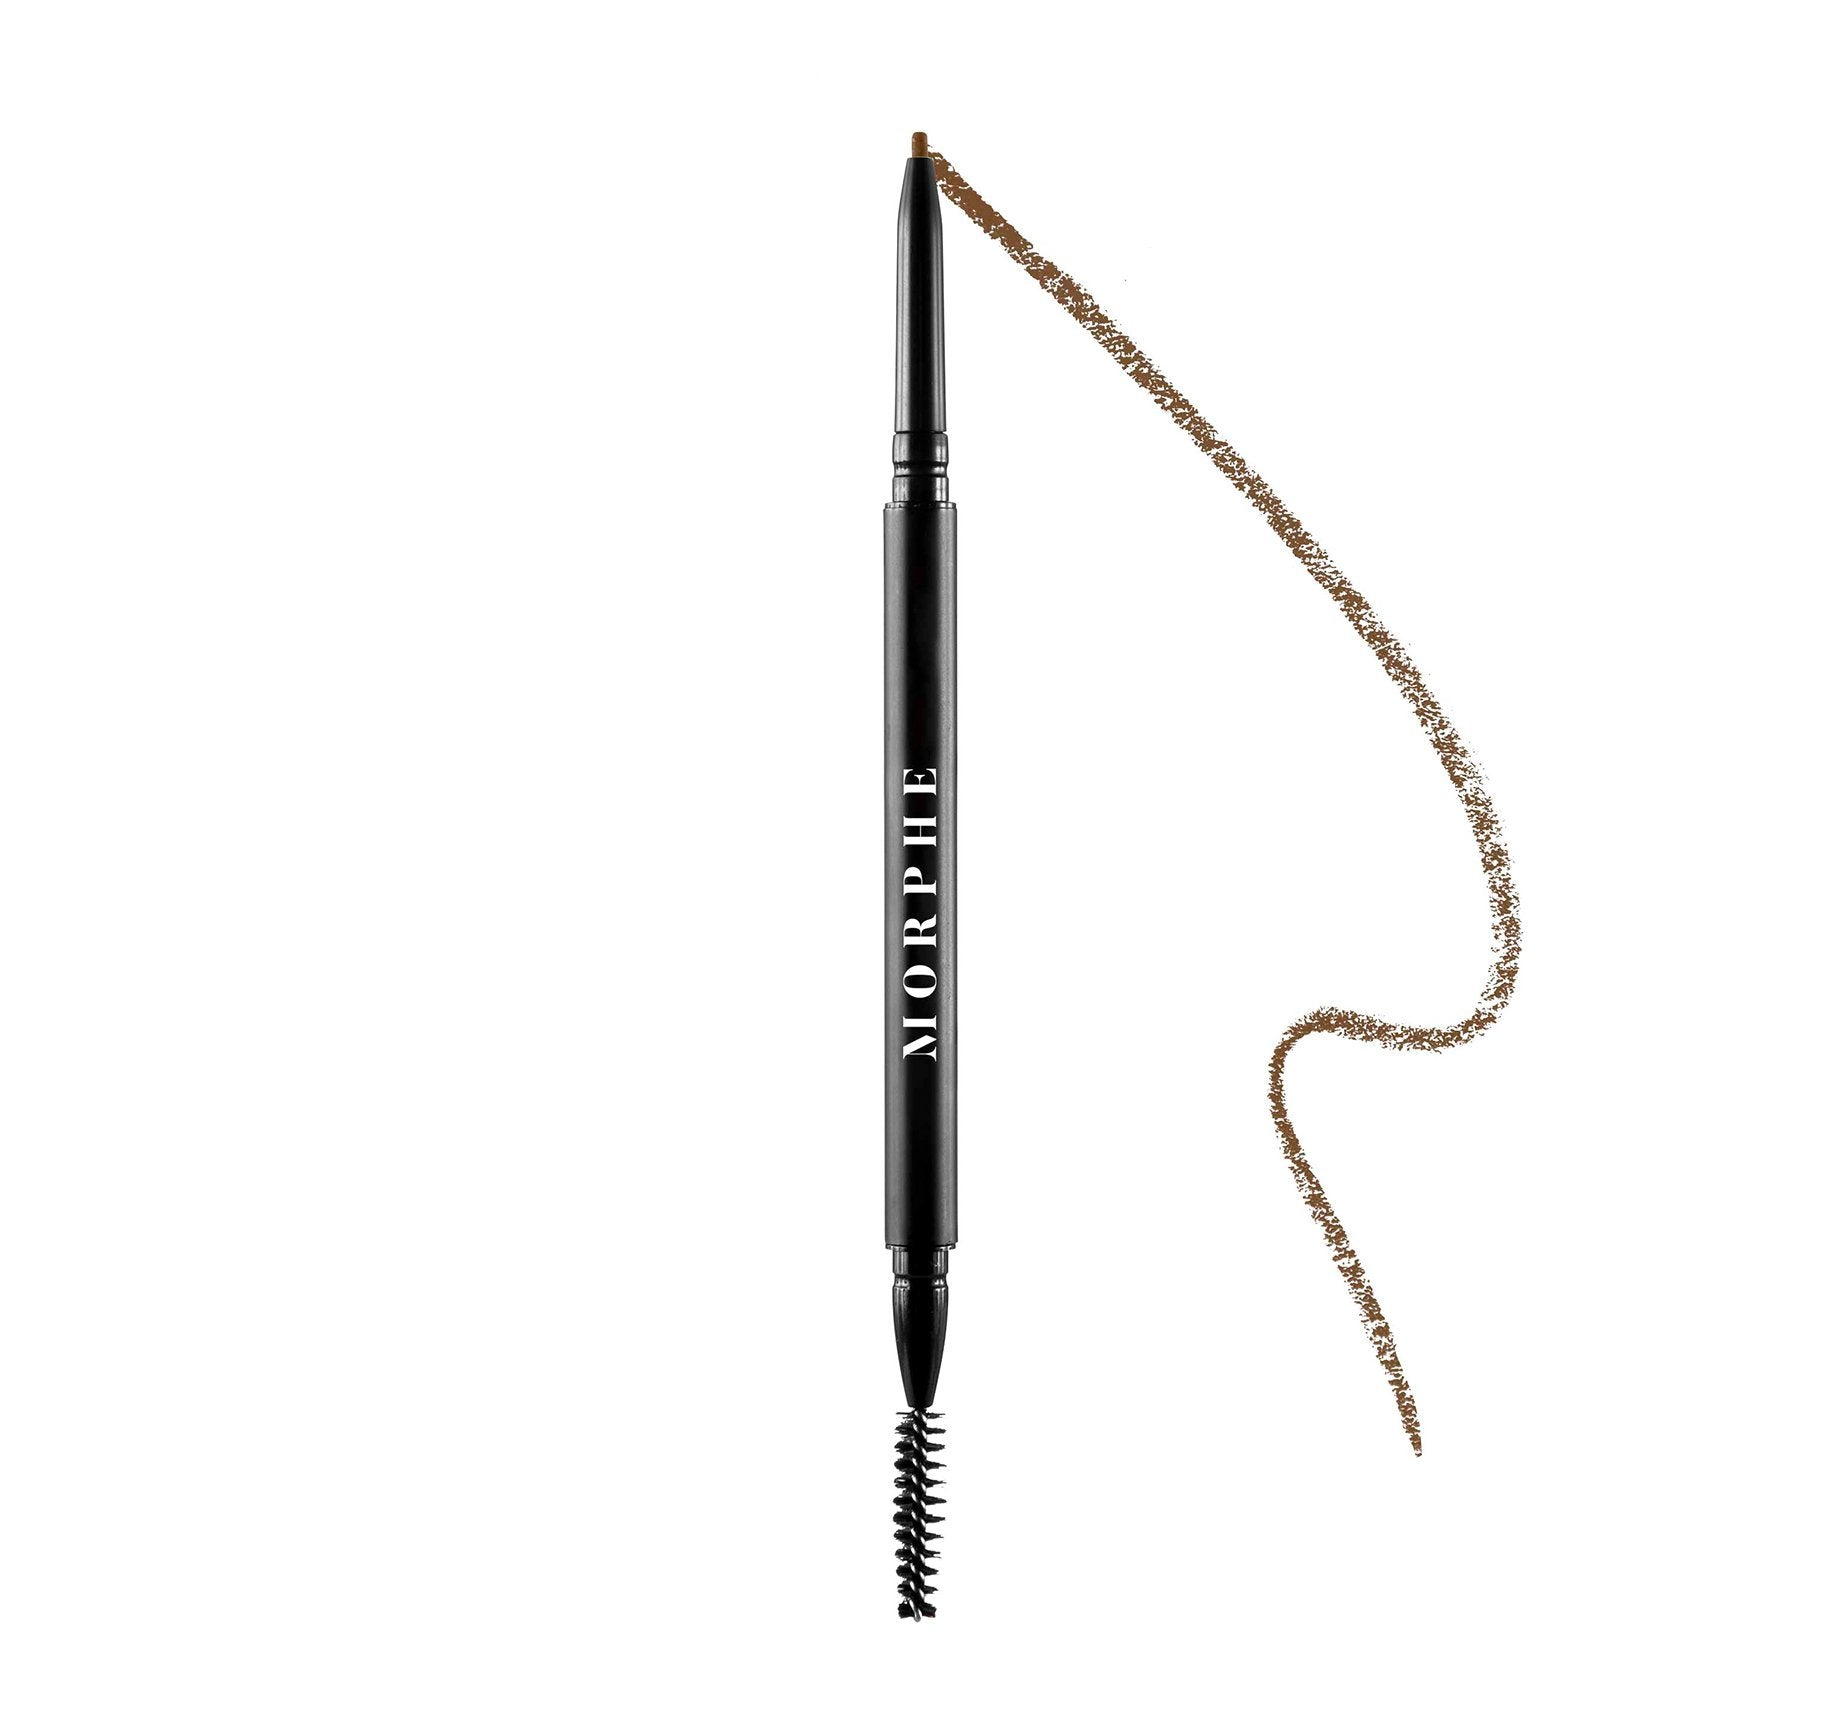 MICRO BROW PENCIL - HAZELNUT, view larger image